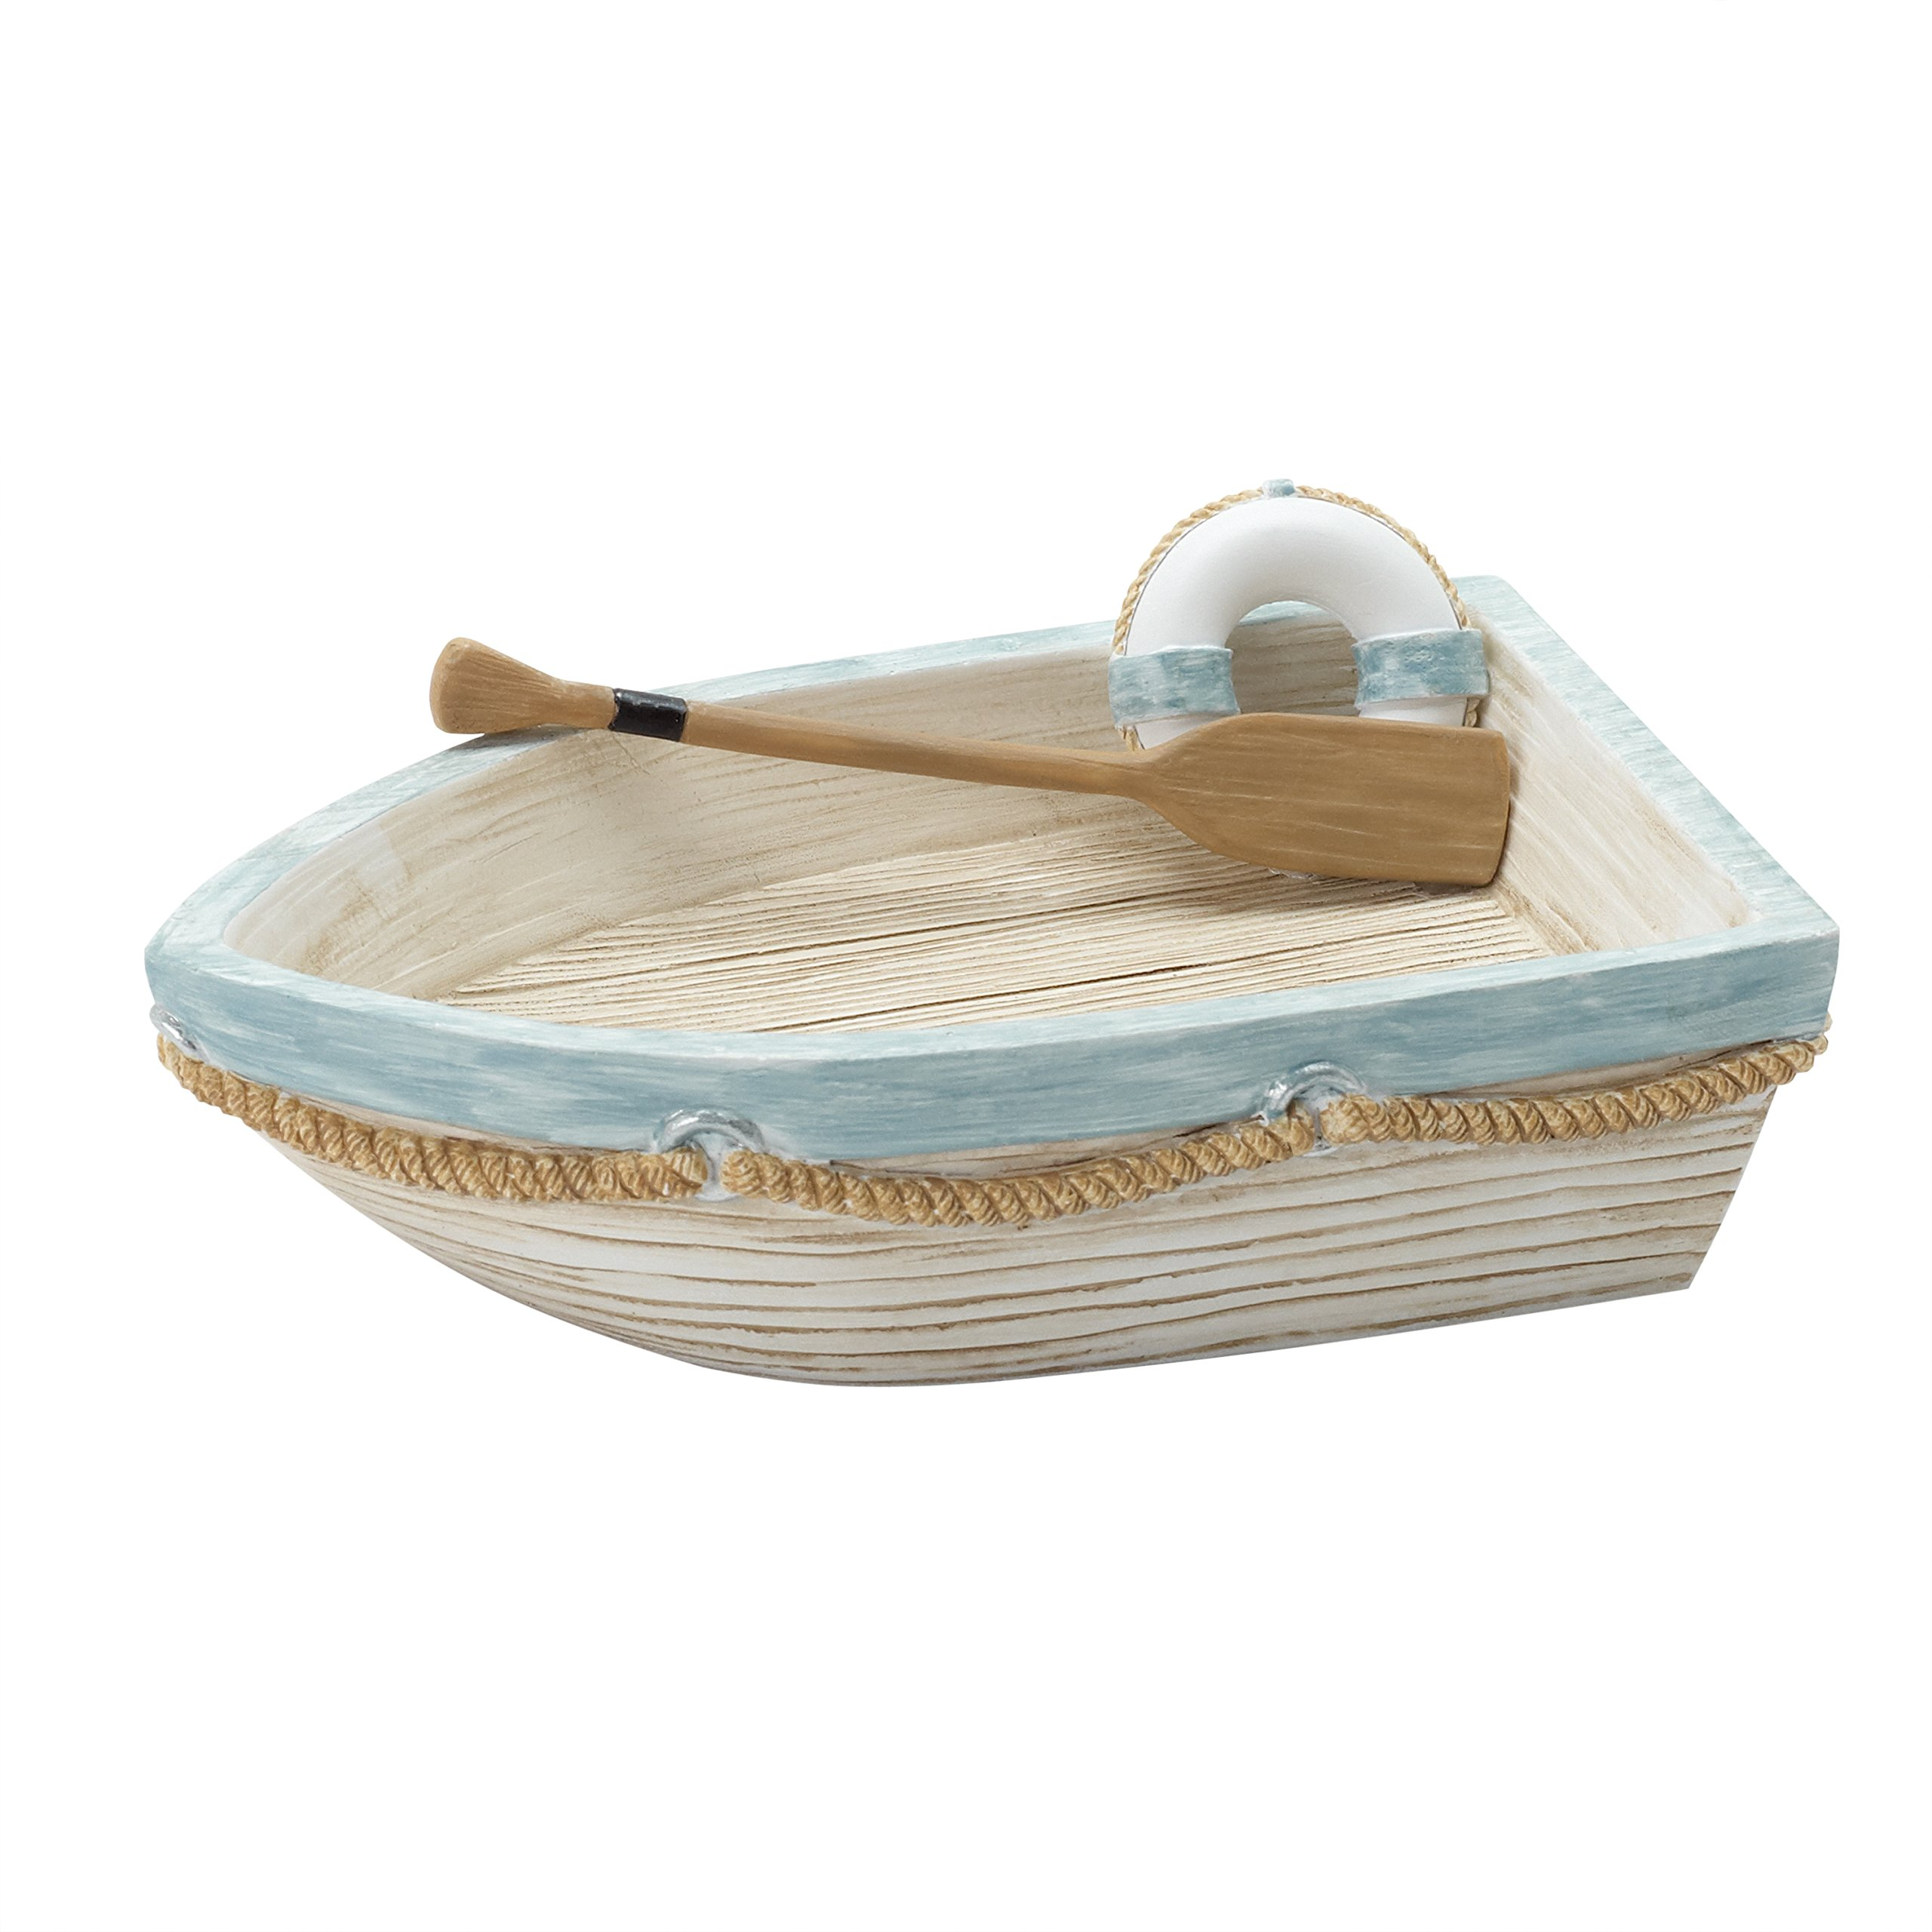 Zenna Home, India Ink Seaside Serenity Soap Dish, Coastal/Beach